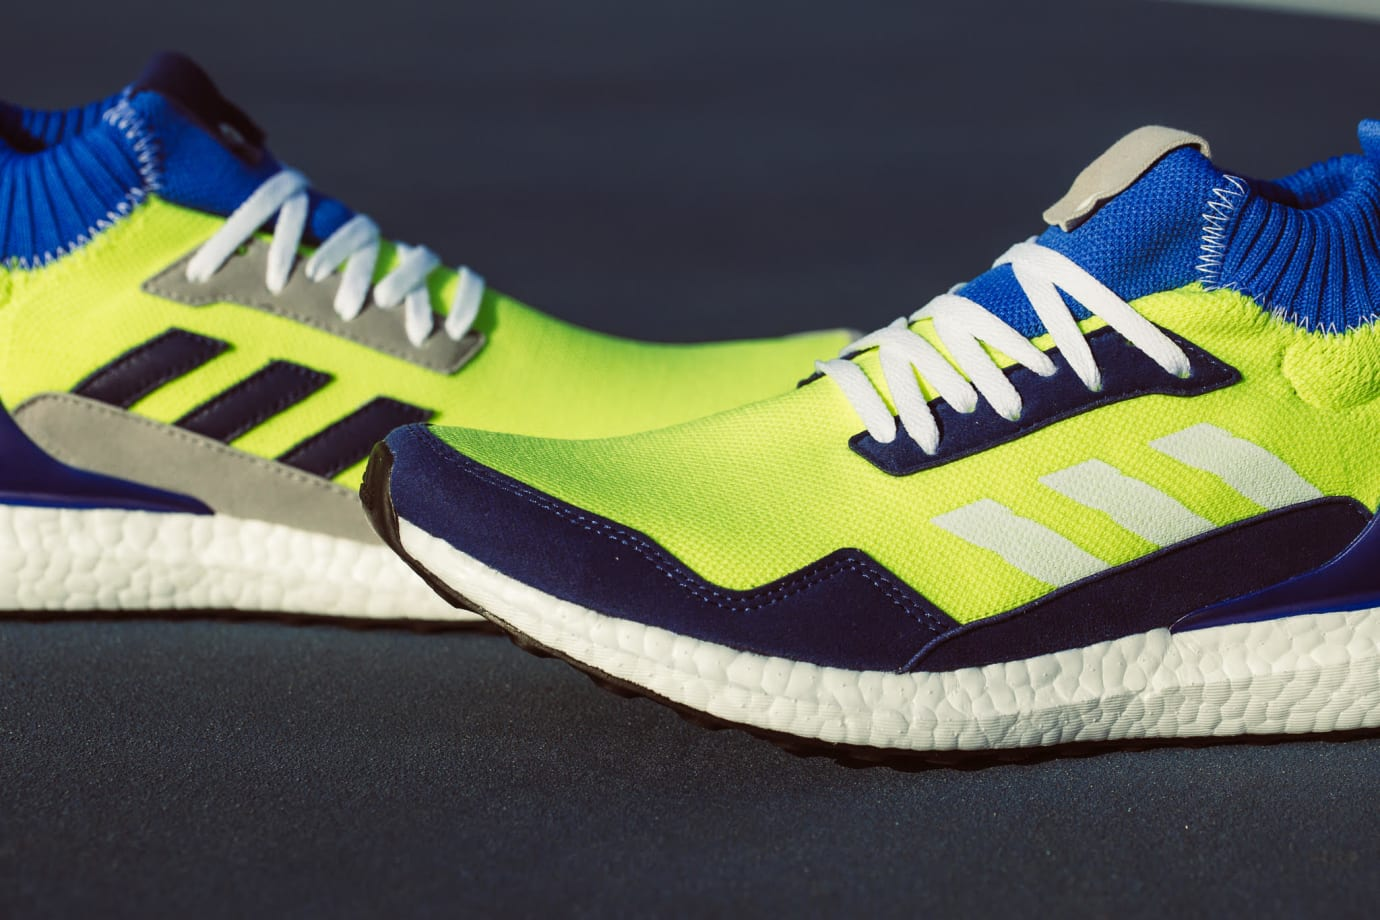 new style 11528 80b55 Image via INVINCIBLE · Adidas Consortium Ultra Boost Mid Prototype Release  Date BD7399 Forefoot